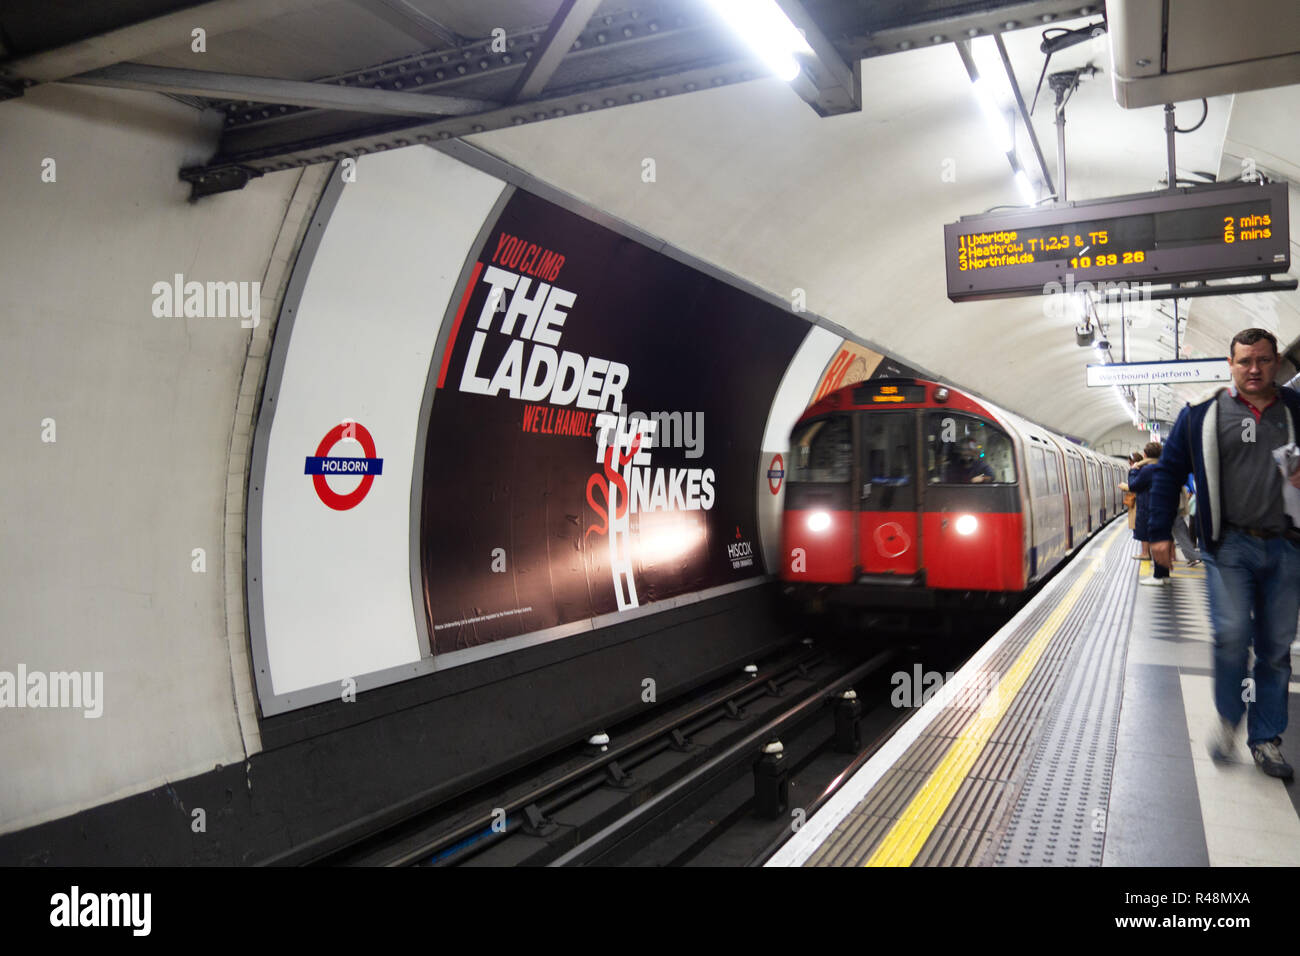 Tube train 48 sheet billboard poster Advertising poster next to the tracks on the London Underground track - Stock Image